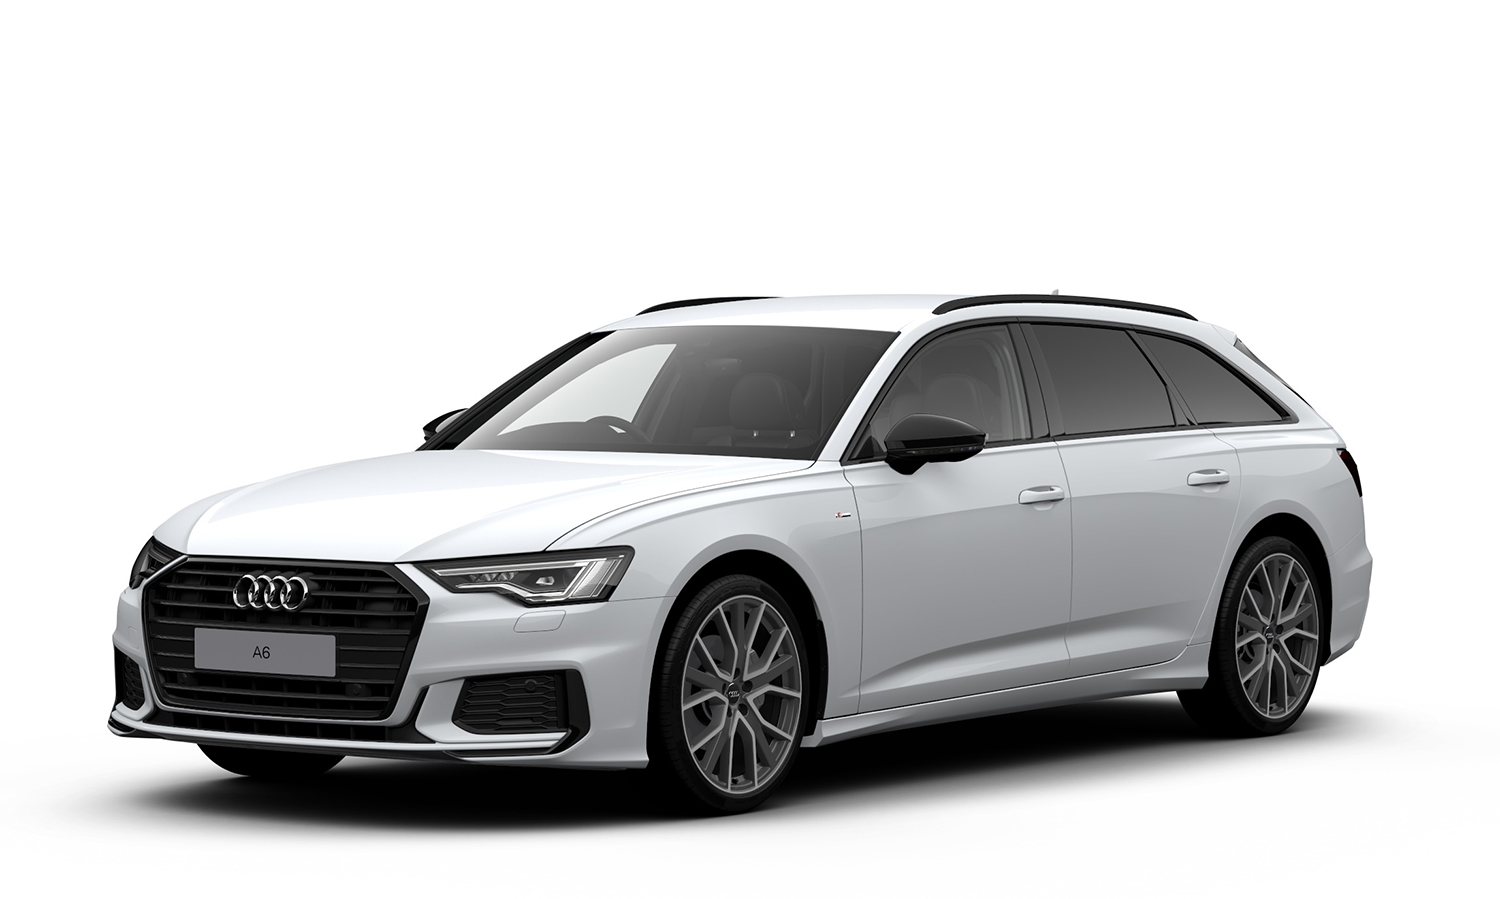 14 Audi A14 Avant made more price-affordable in Thailand | audi new car prices